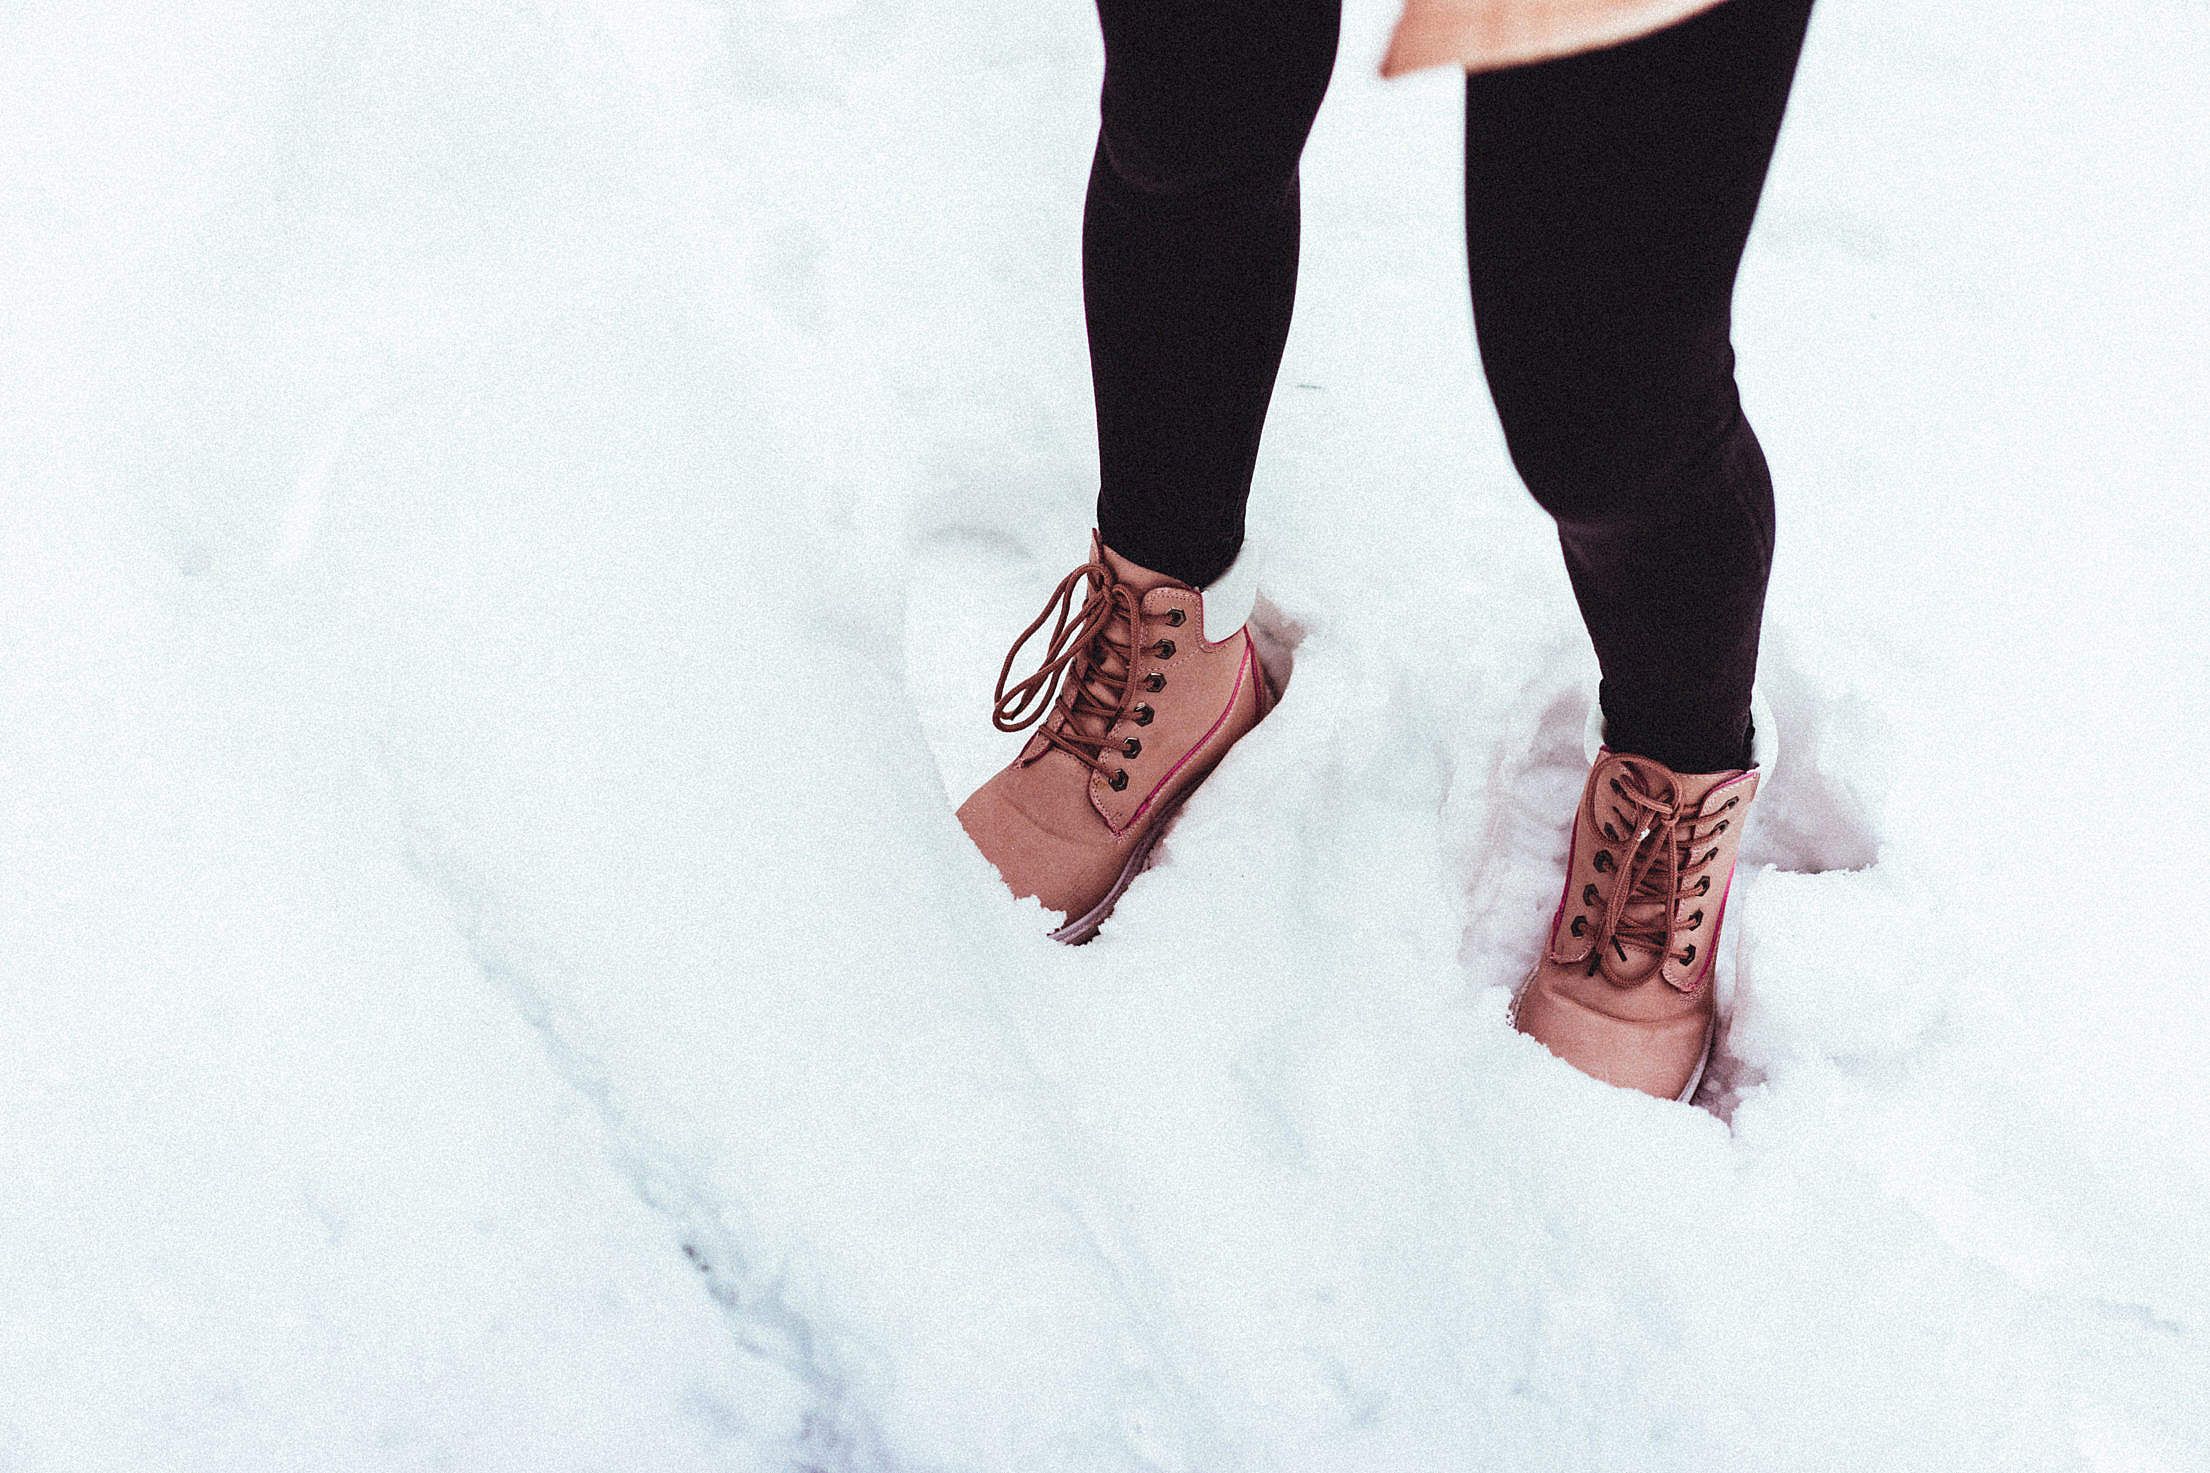 Young Woman in Winter Shoes in Snow Free Stock Photo